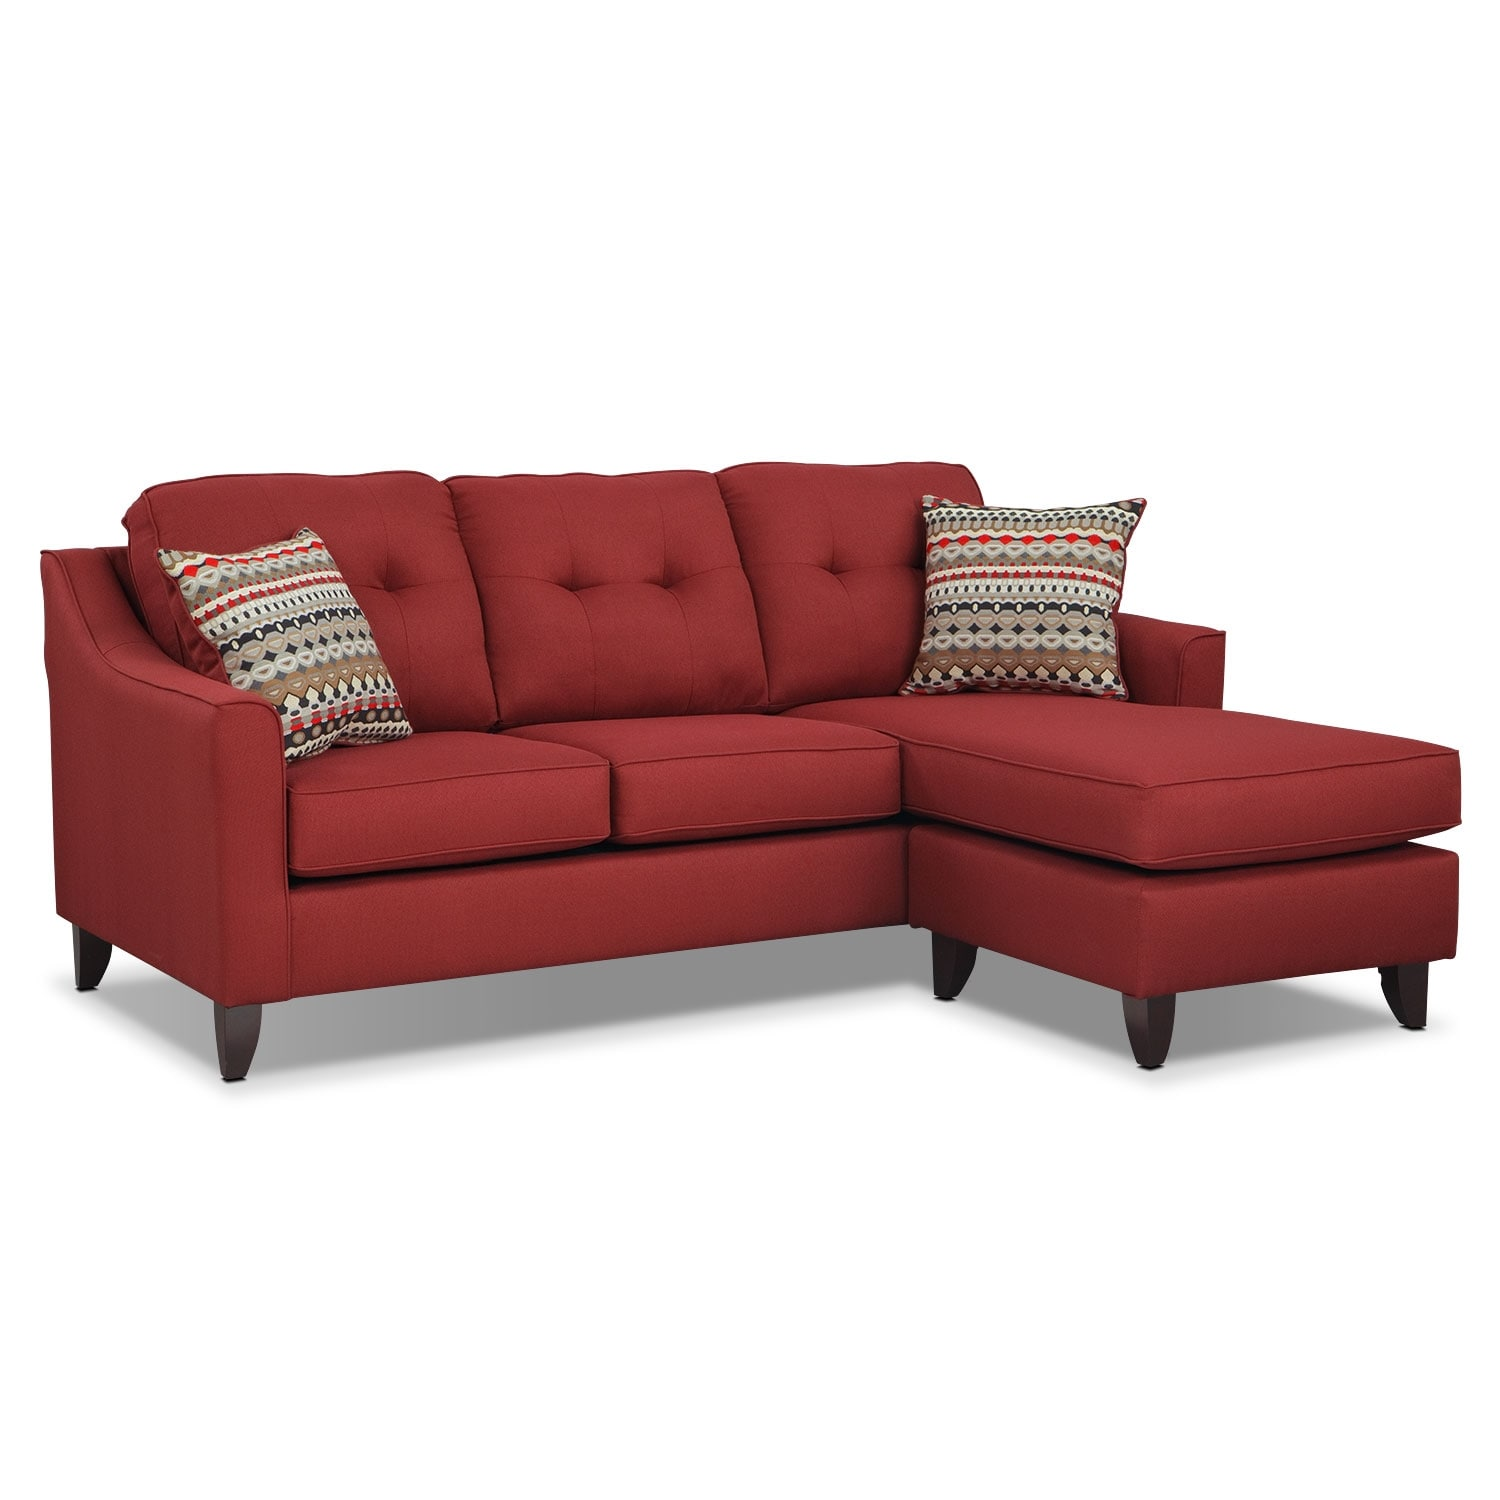 Living Room Furniture - Marco Red Chaise Sofa